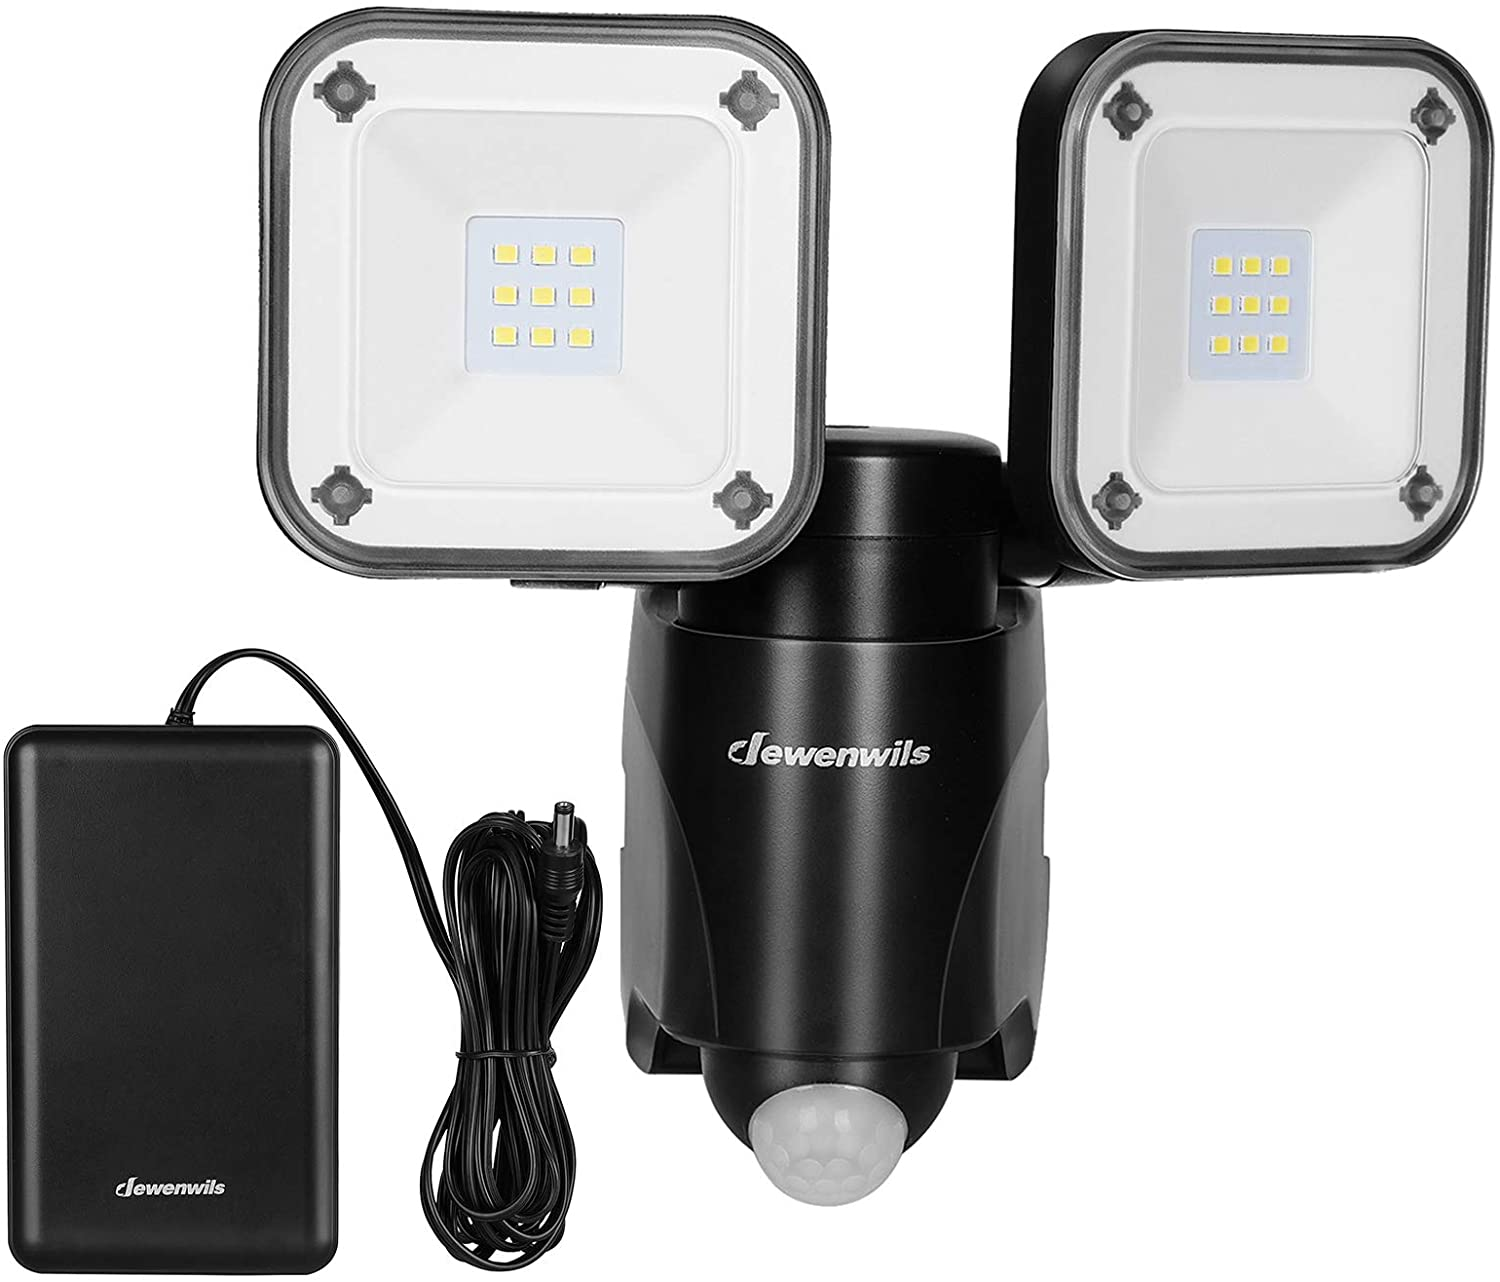 DEWENWILS 800 Lumen Battery Operated LED Motion Security Light, Outdoor Motion Sensor Light with Battery Box, Waterproof, Dual Head Flood Light for Entryways, Yard, Shed, Fence